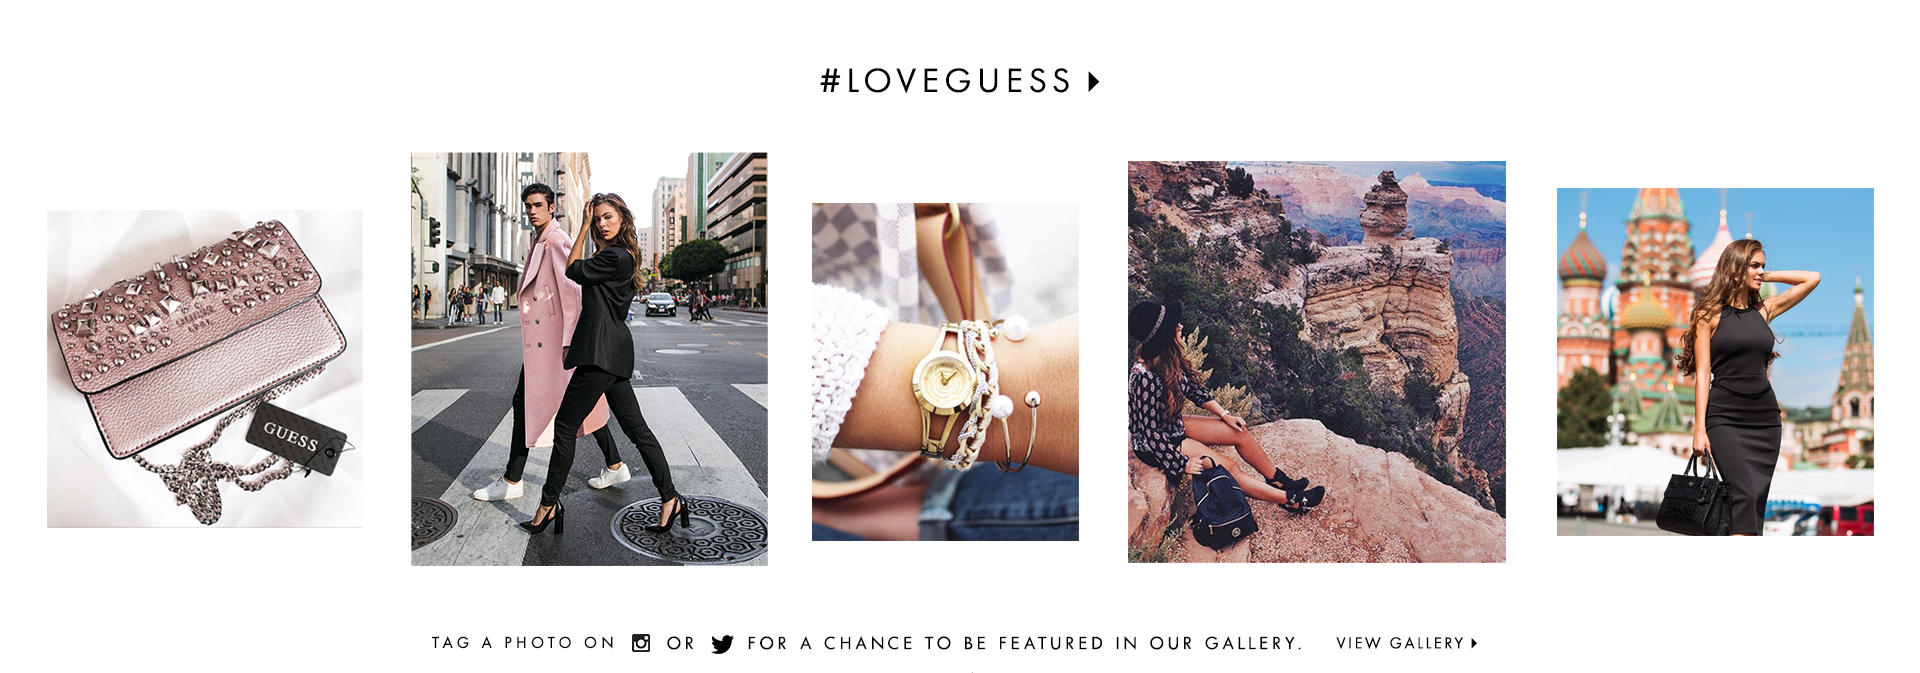 #LOVEGUESS